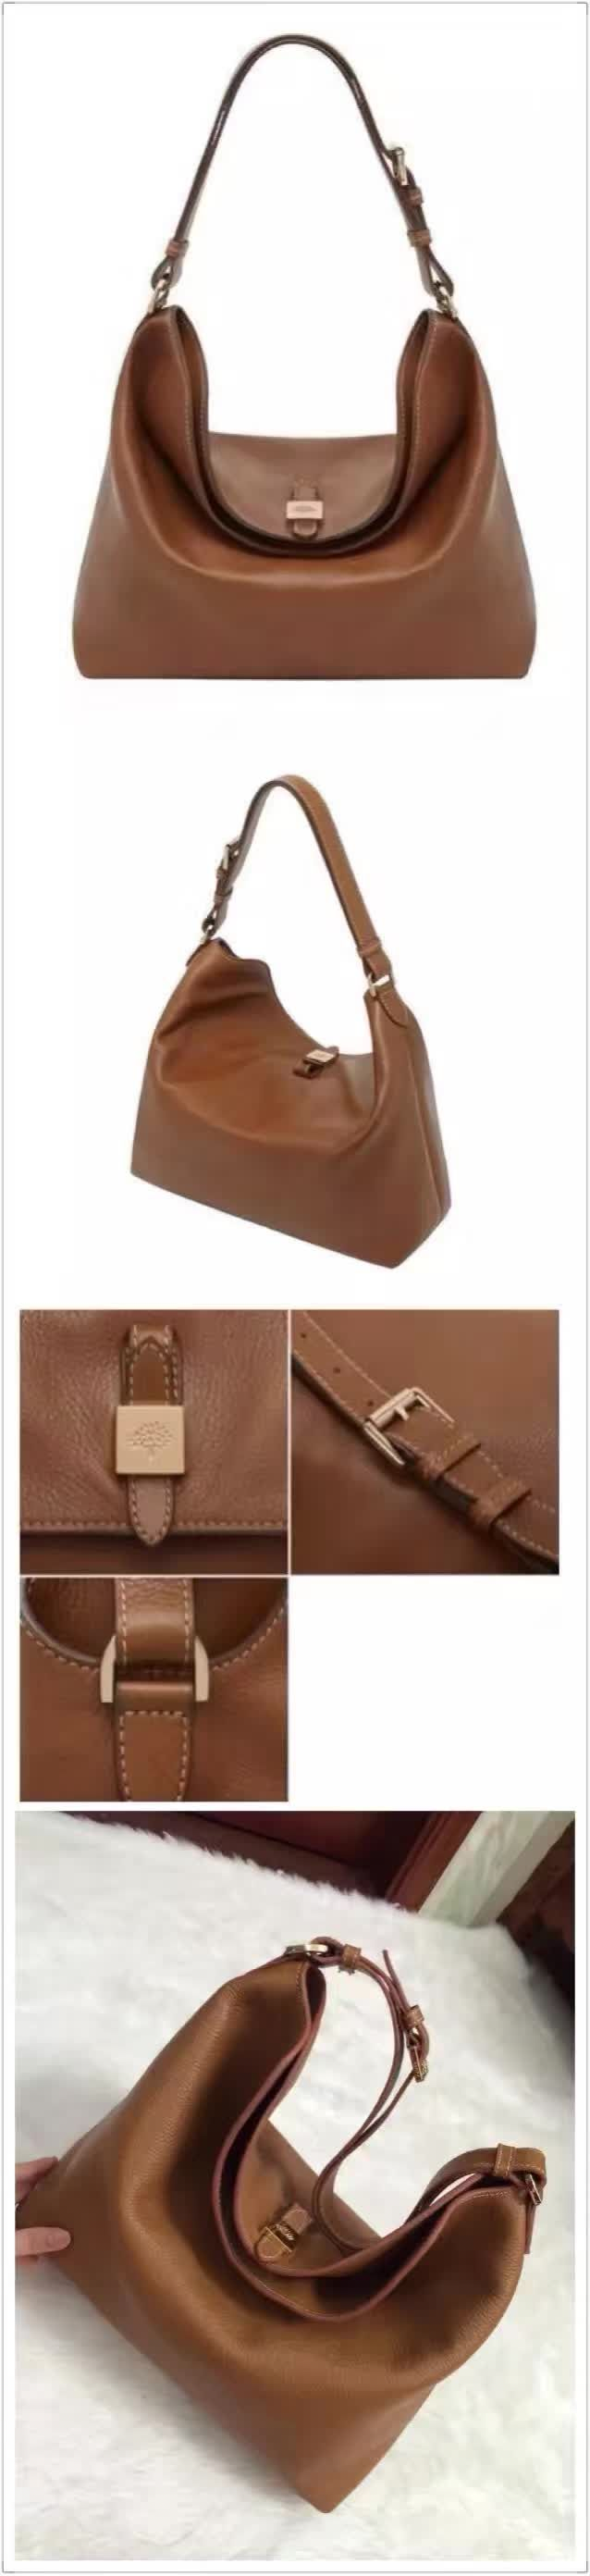 mulberry Bag, ID : 63258(FORSALE:a@yybags.com), swiss gear backpack, shop for purses, clearance backpacks, backpack on wheels, best leather briefcase, backpack online, trendy backpacks, backpacks for men, where can i buy a briefcase, personalized backpacks, leather backpack purse, black tote, tot bag, brown briefcase, black wallet #mulberryBag #mulberry #2016 #backpacks